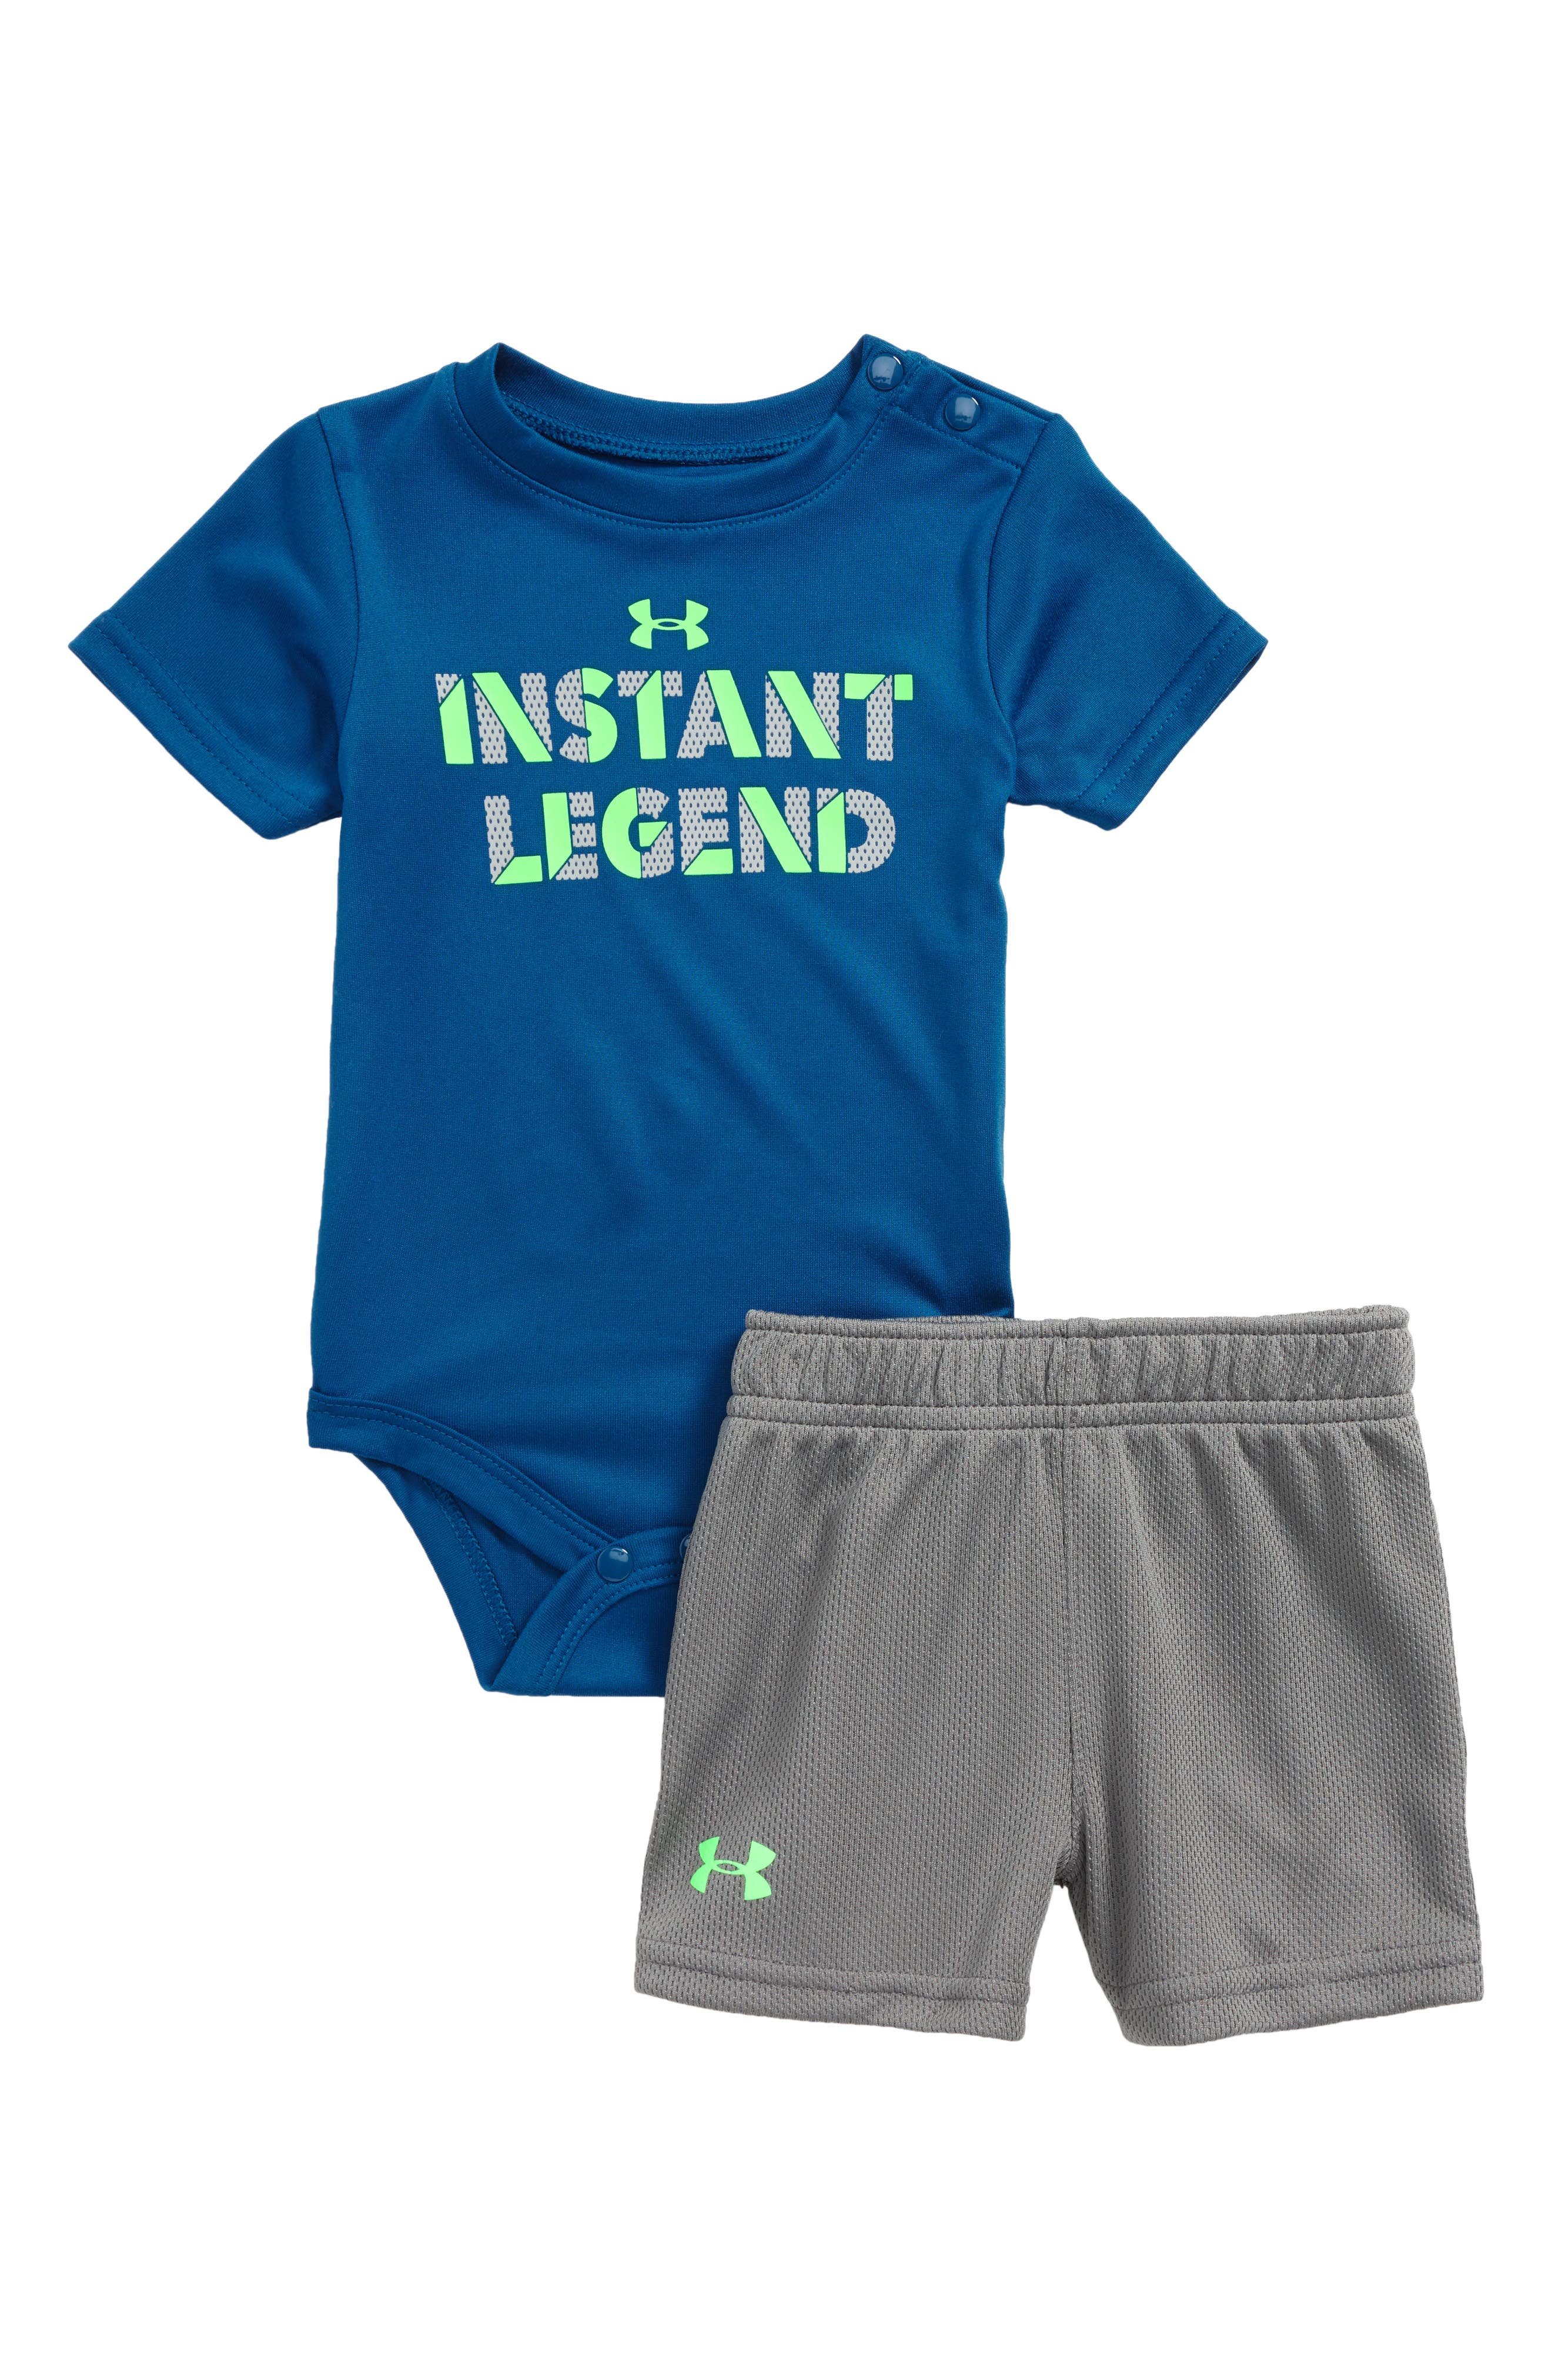 Alternate Image 1 Selected - Under Armour Instant Legend Bodysuit & Shorts Set (Baby Boys)